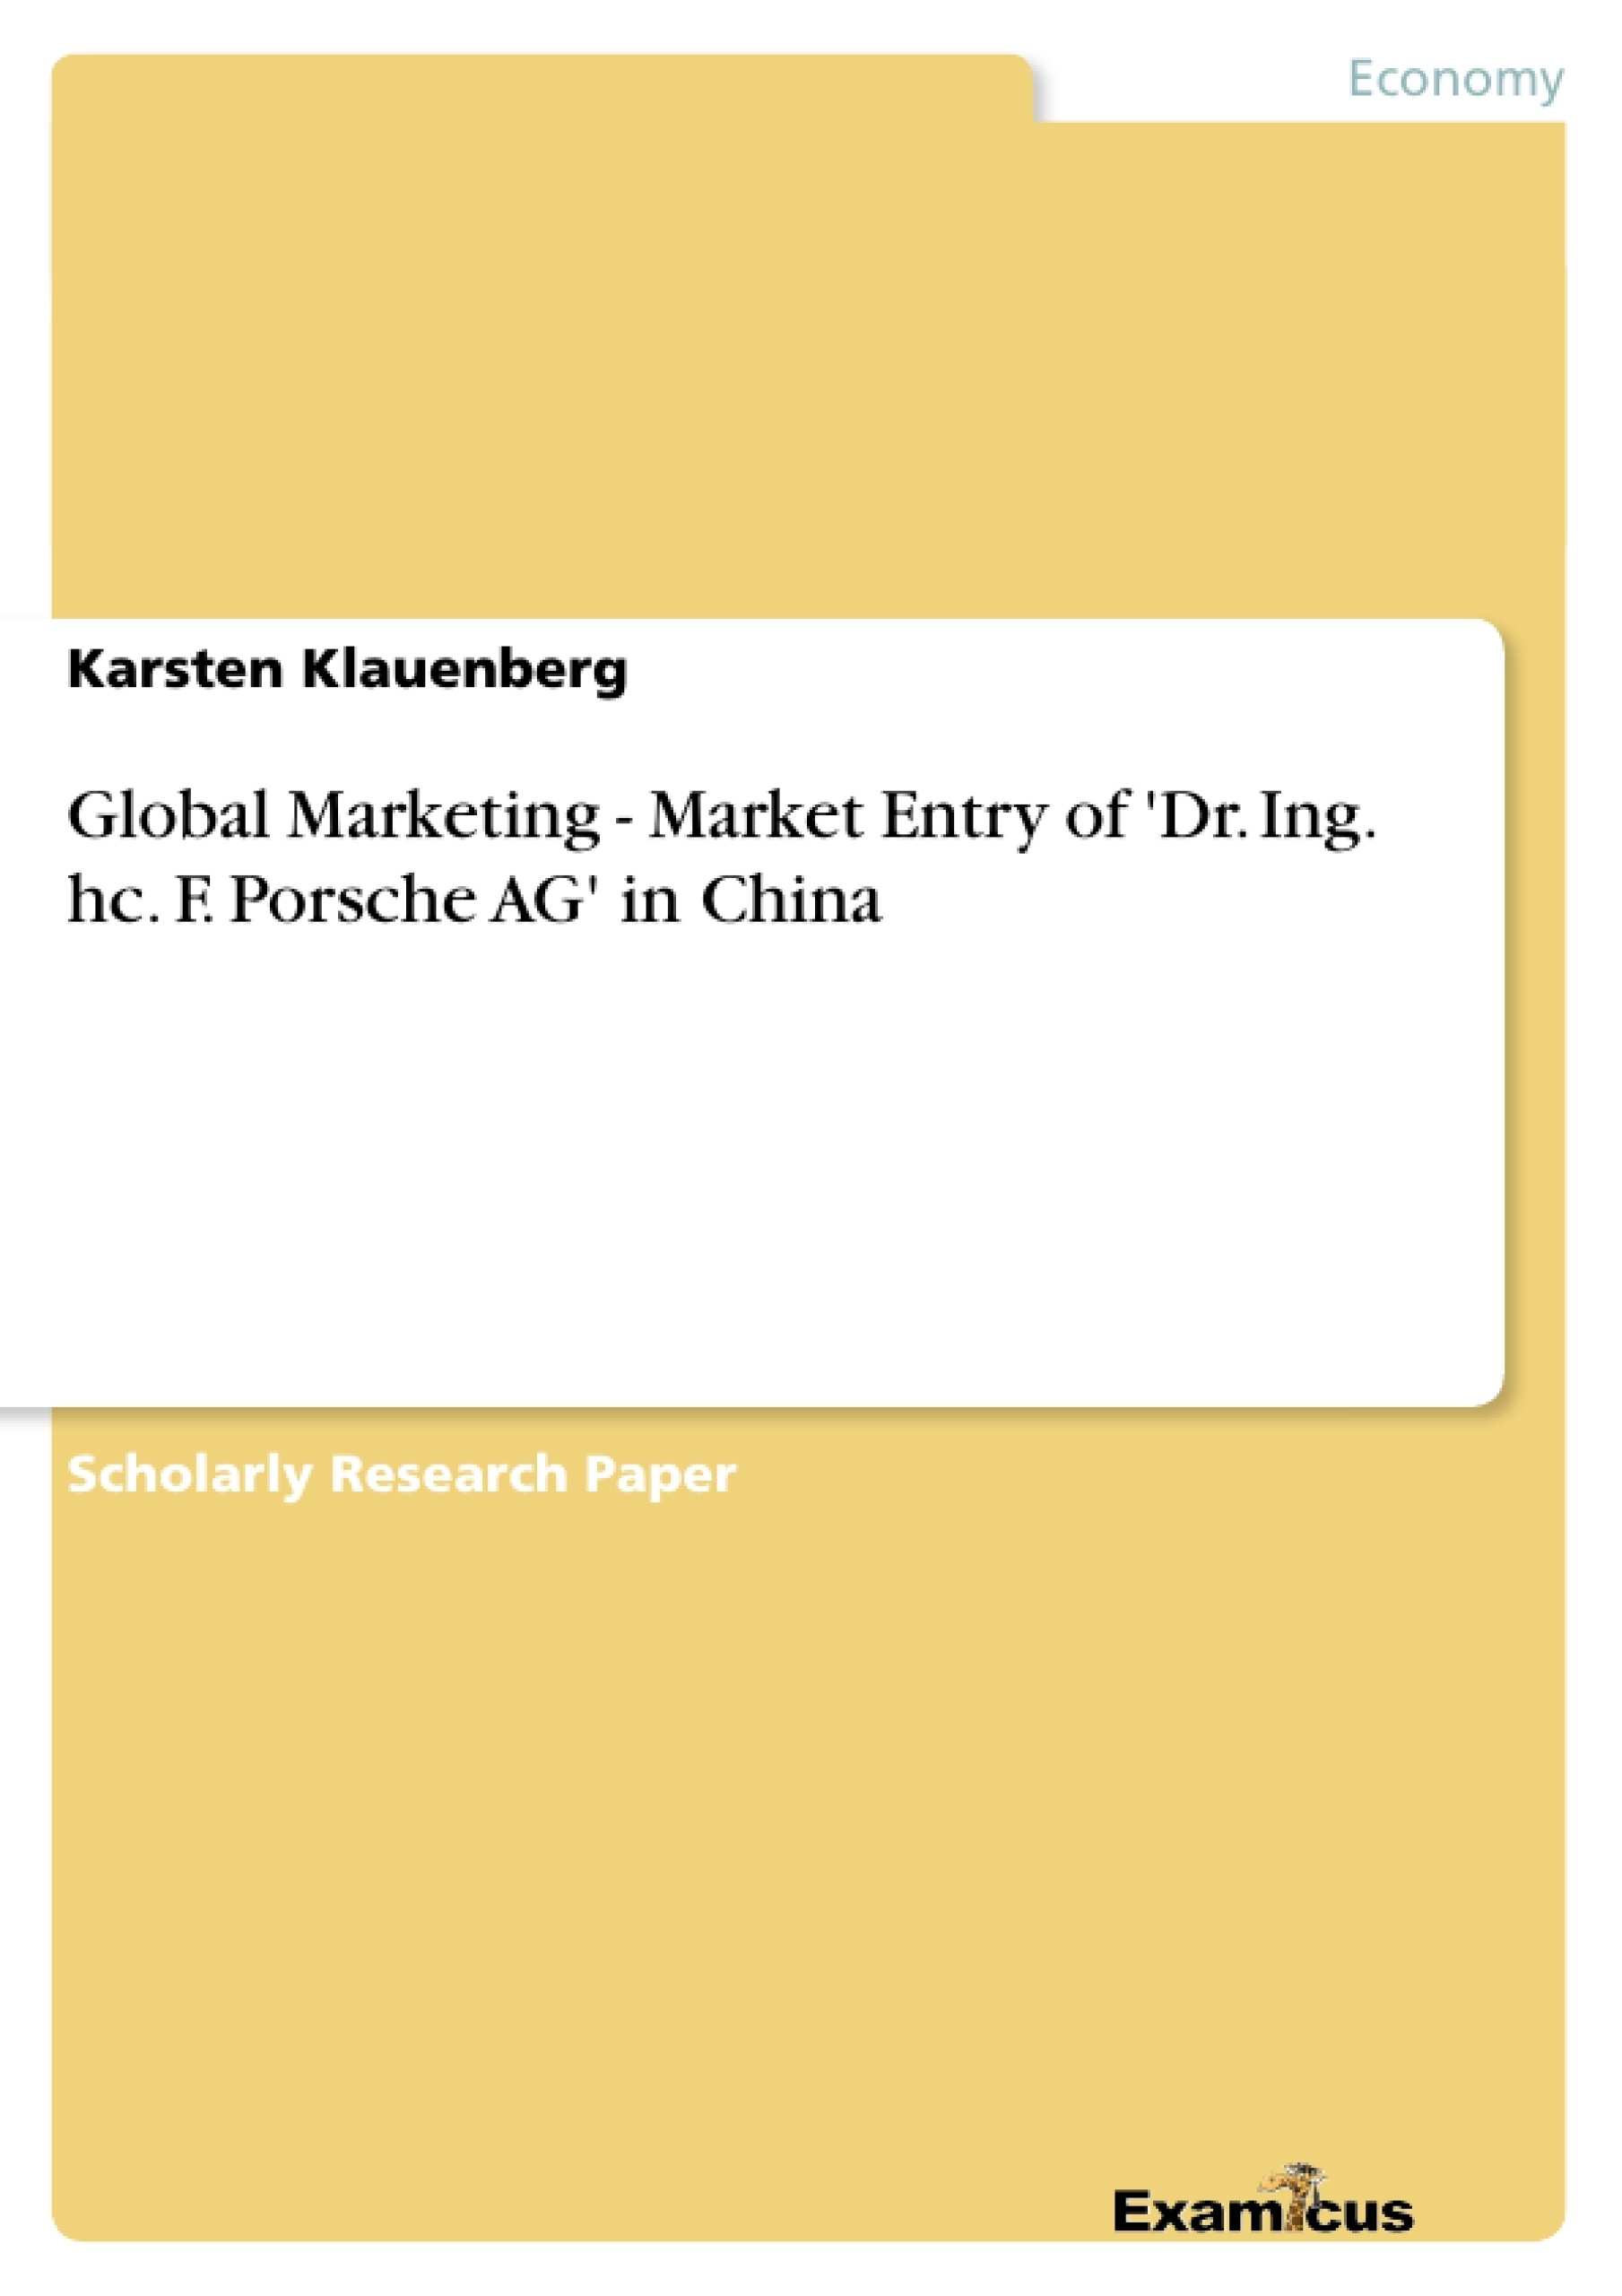 Title: Global Marketing - Market Entry of 'Dr. Ing. hc. F. Porsche AG' in China